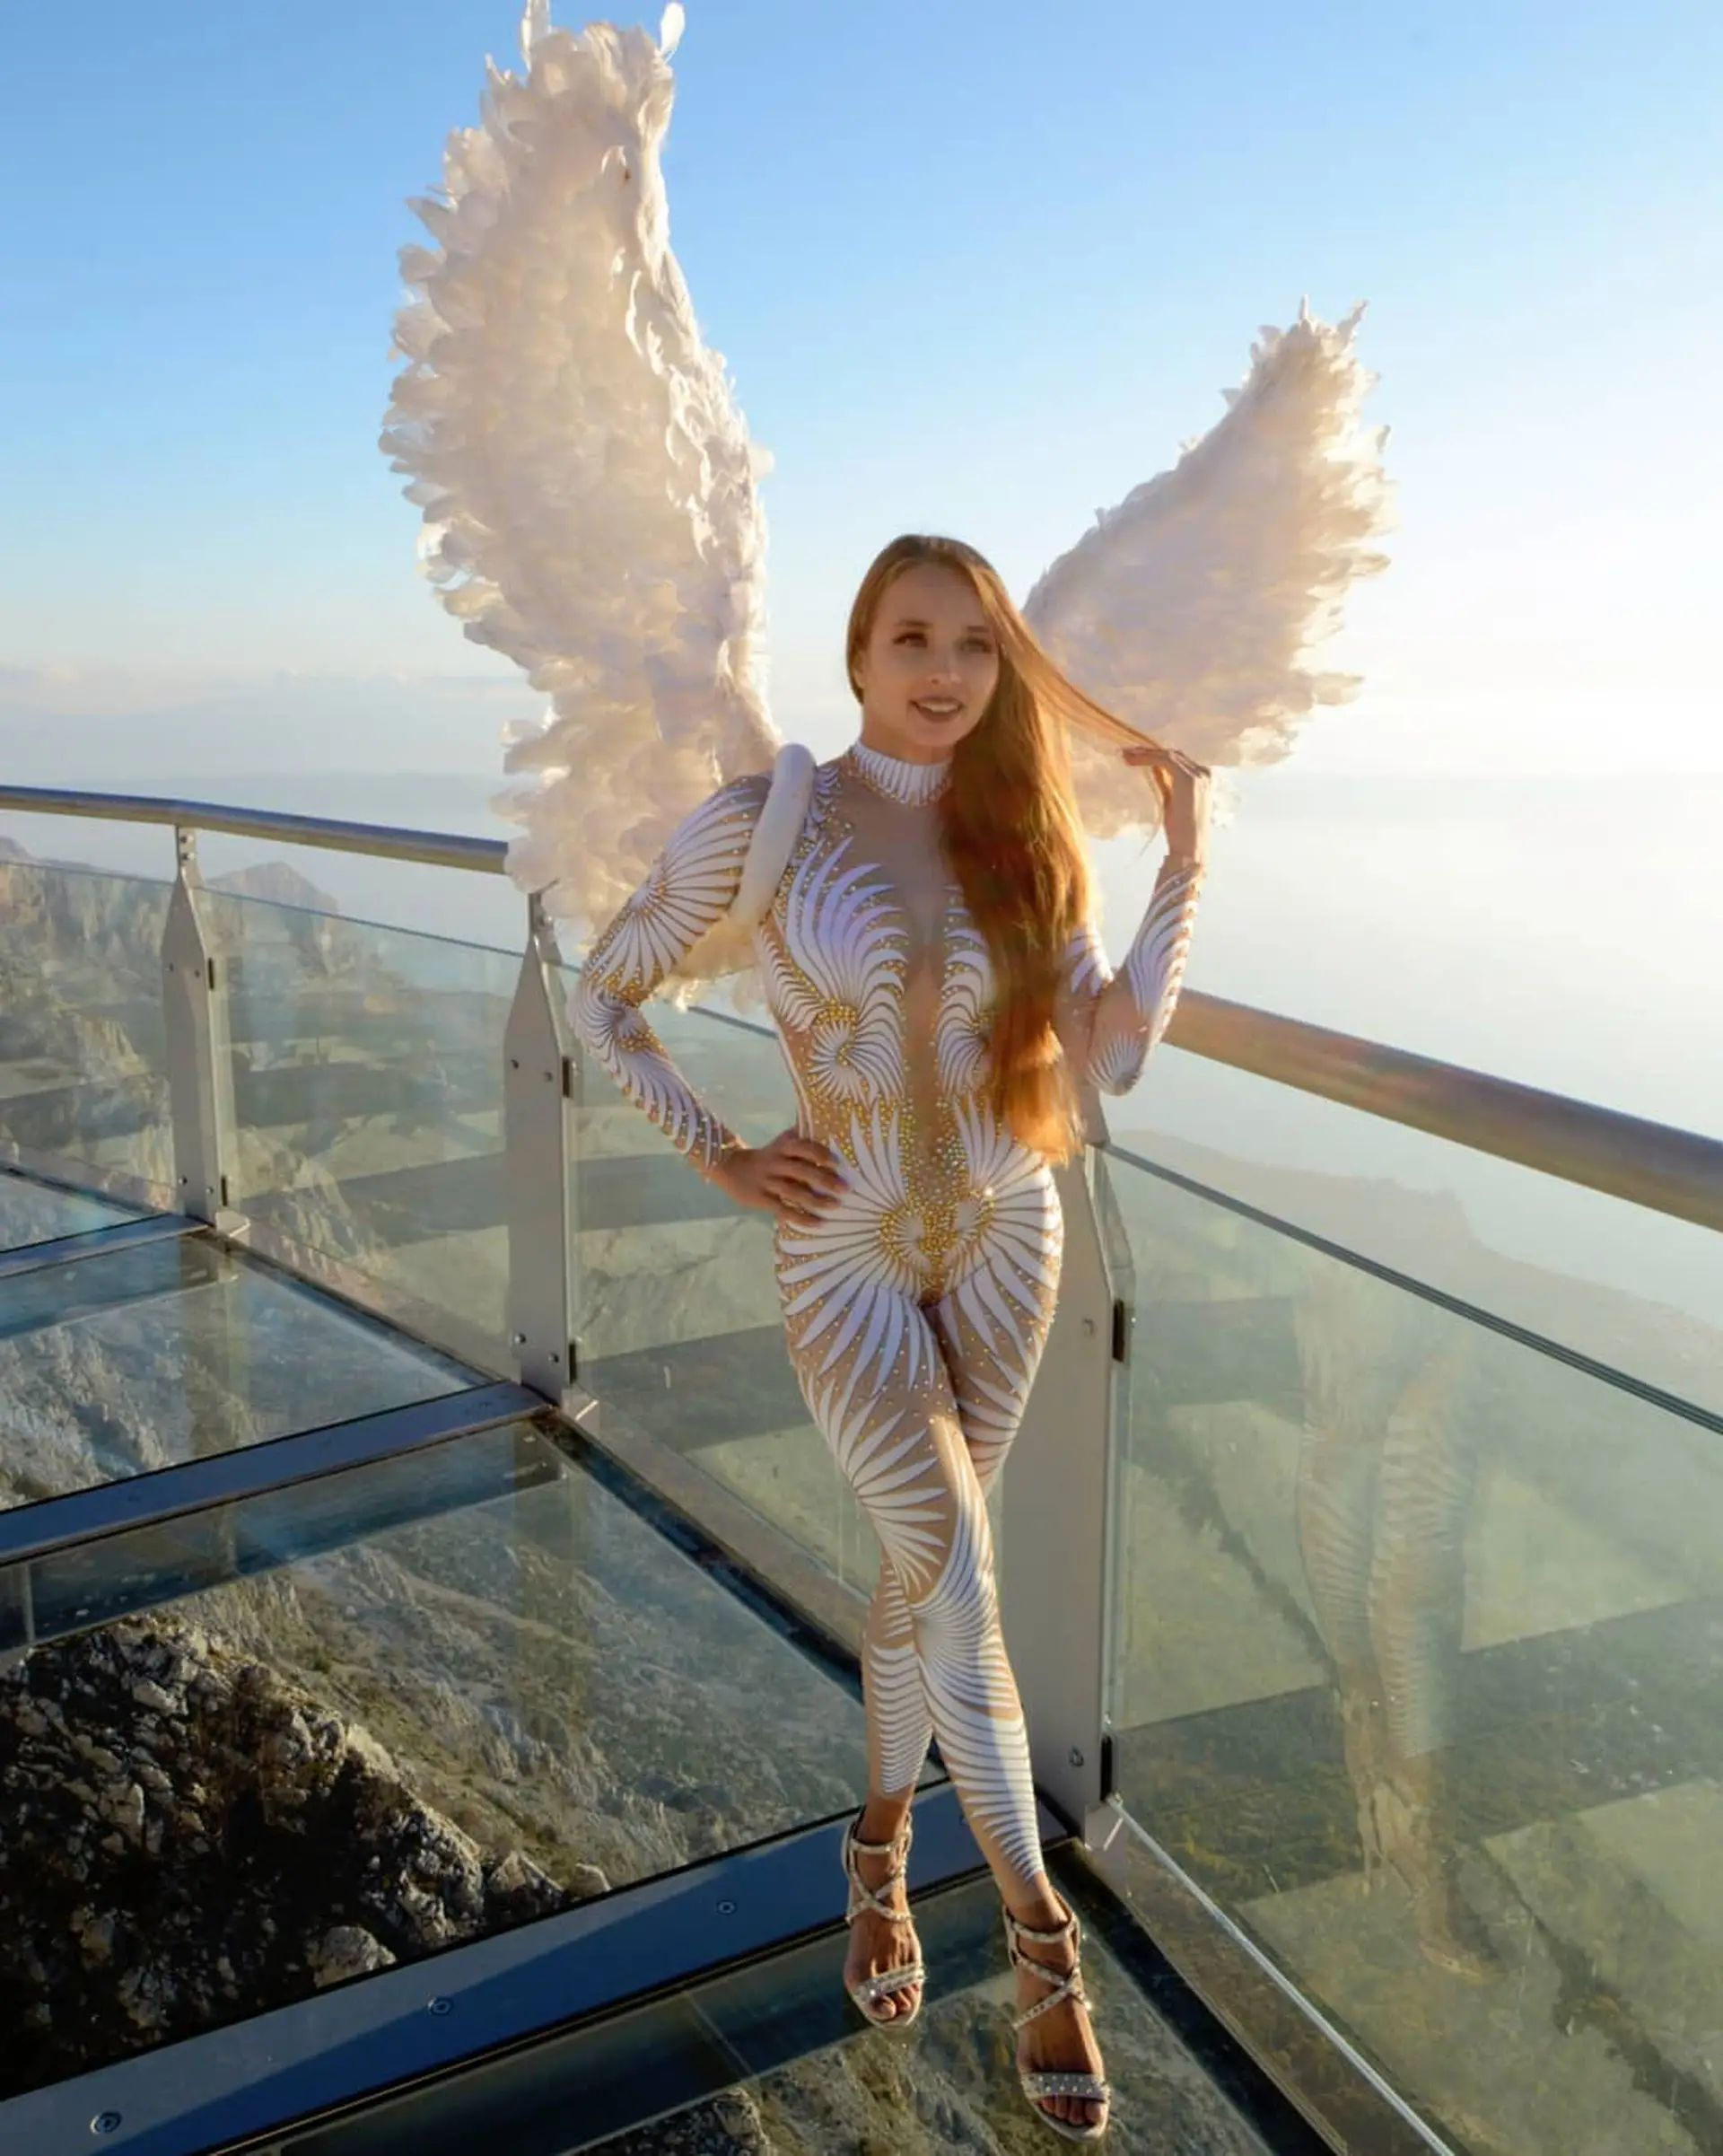 Russian beauty on Skywalk Biokovo